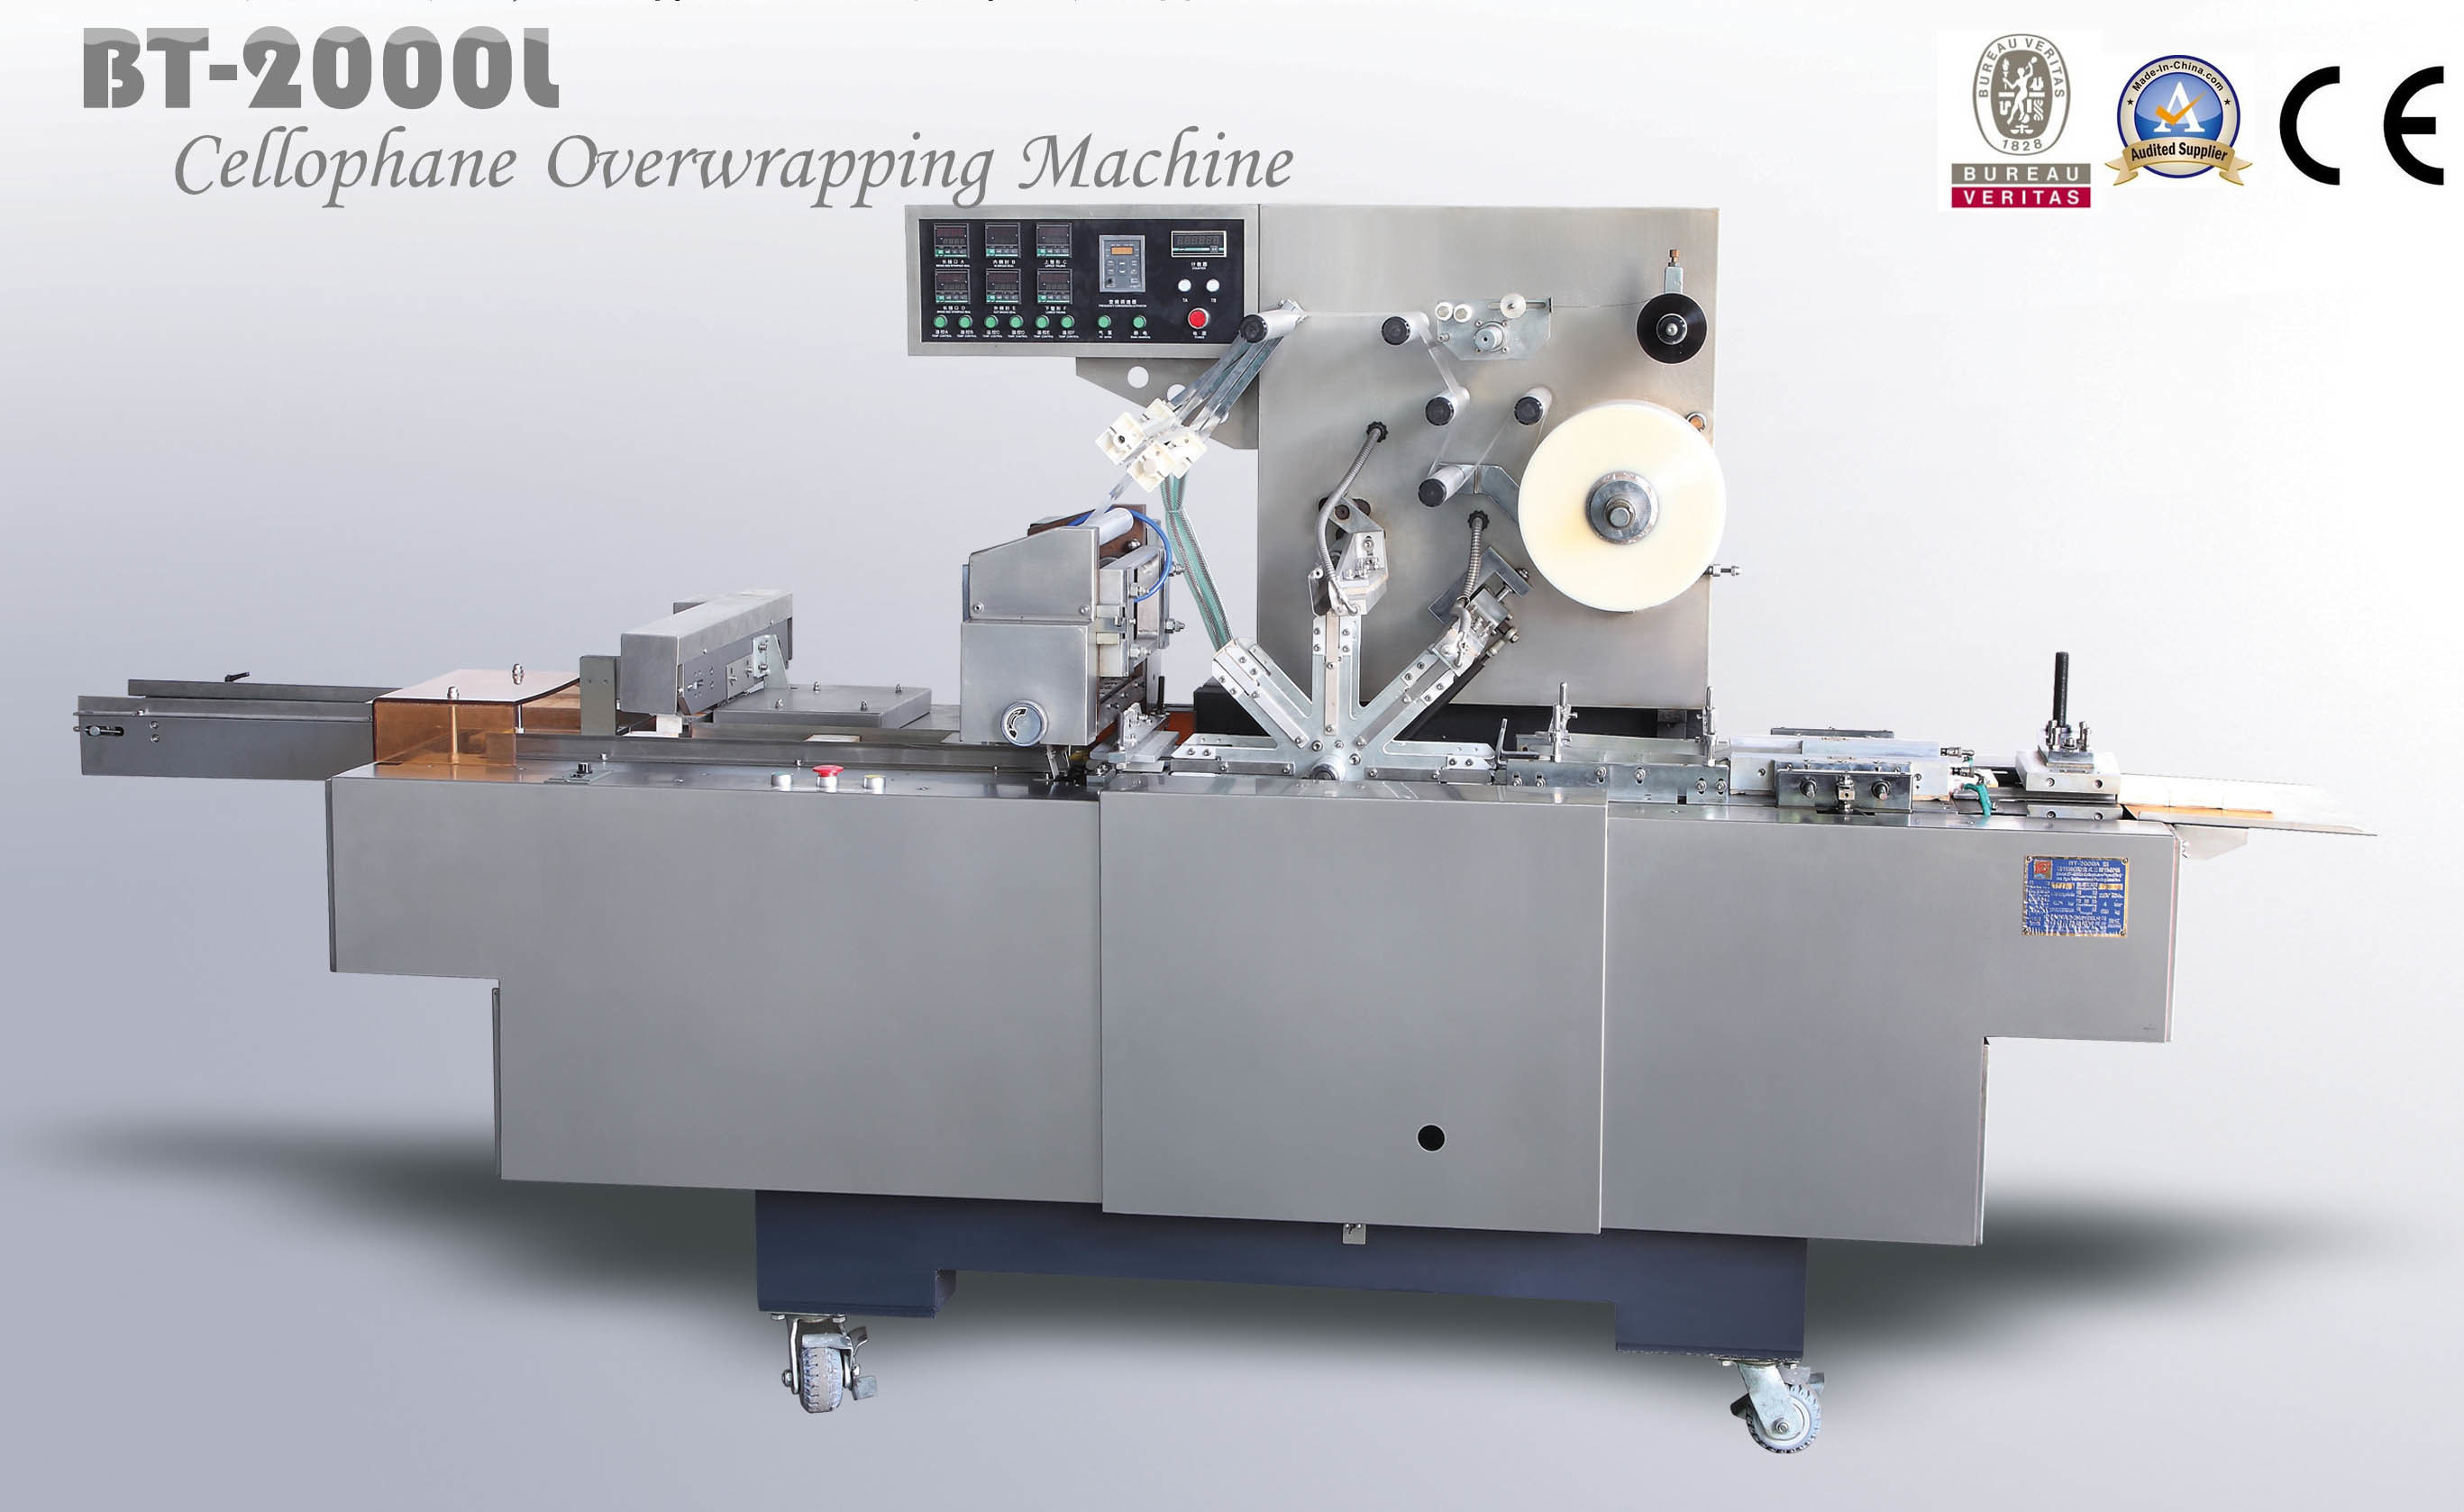 Bt-2000L Automatic Cellophane Film Overwrapping Machine for Production Line